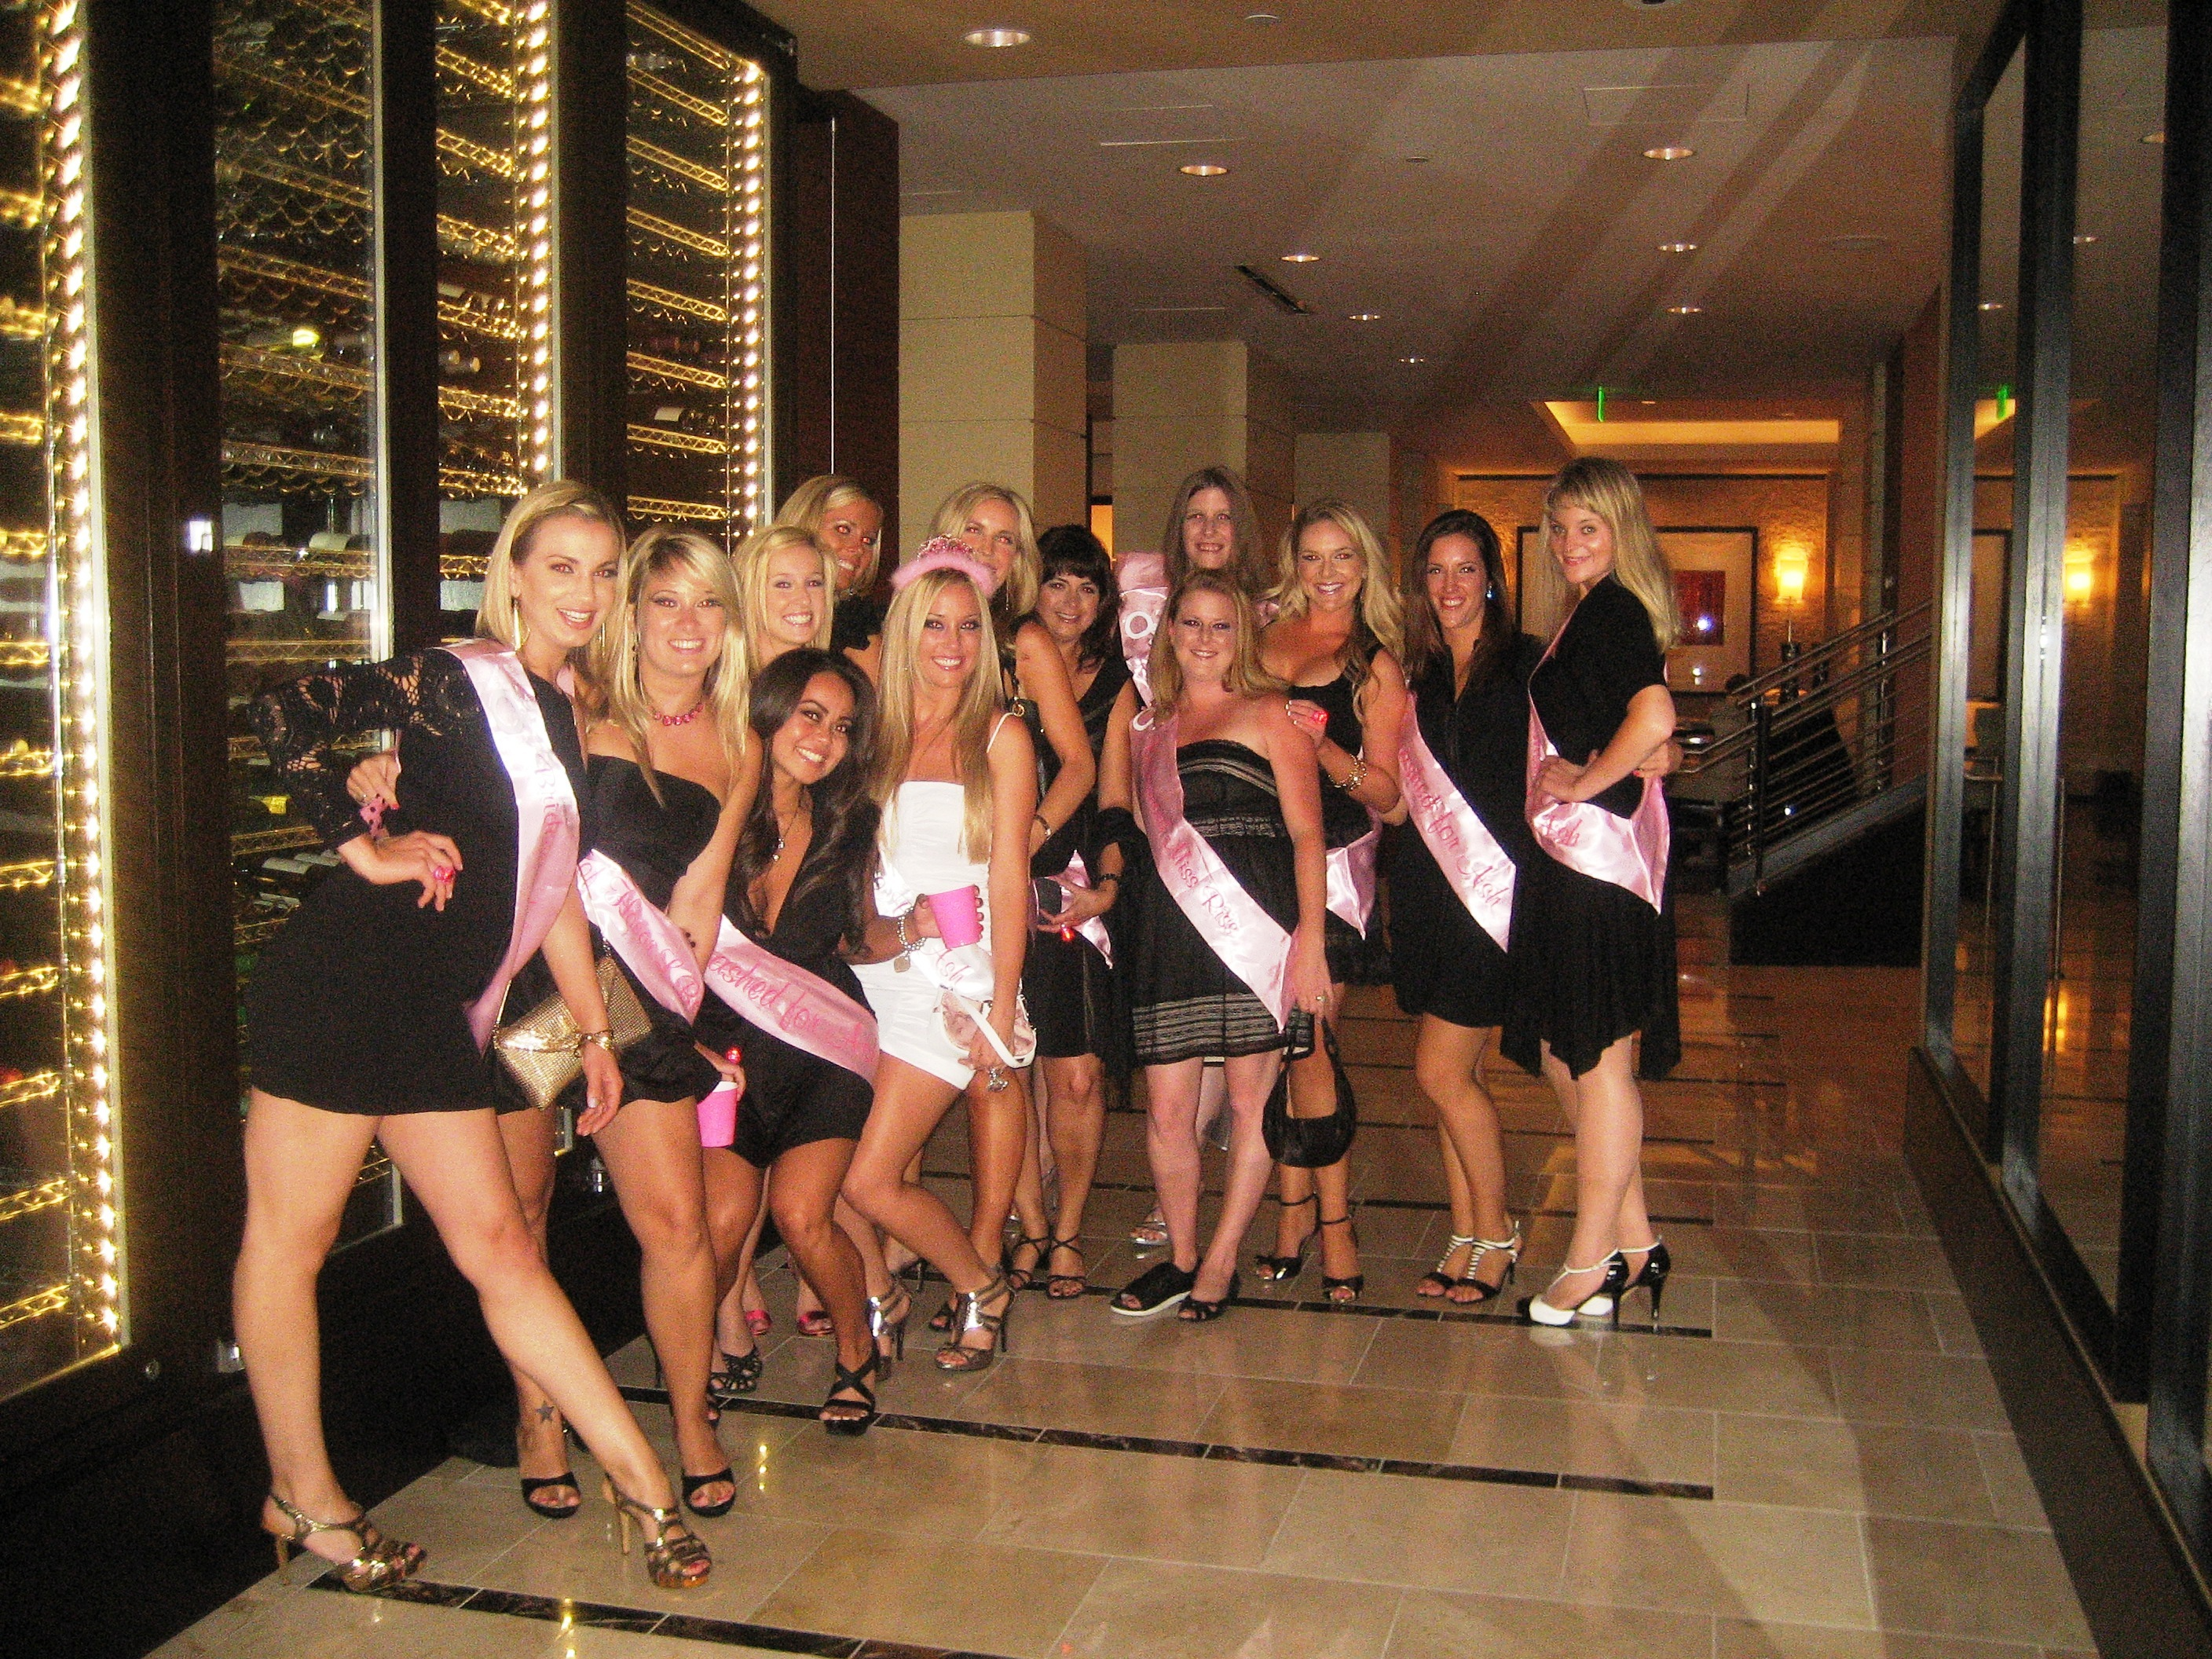 pink, black, Party, Bridesmaid, And, Bachelorette, Sashes